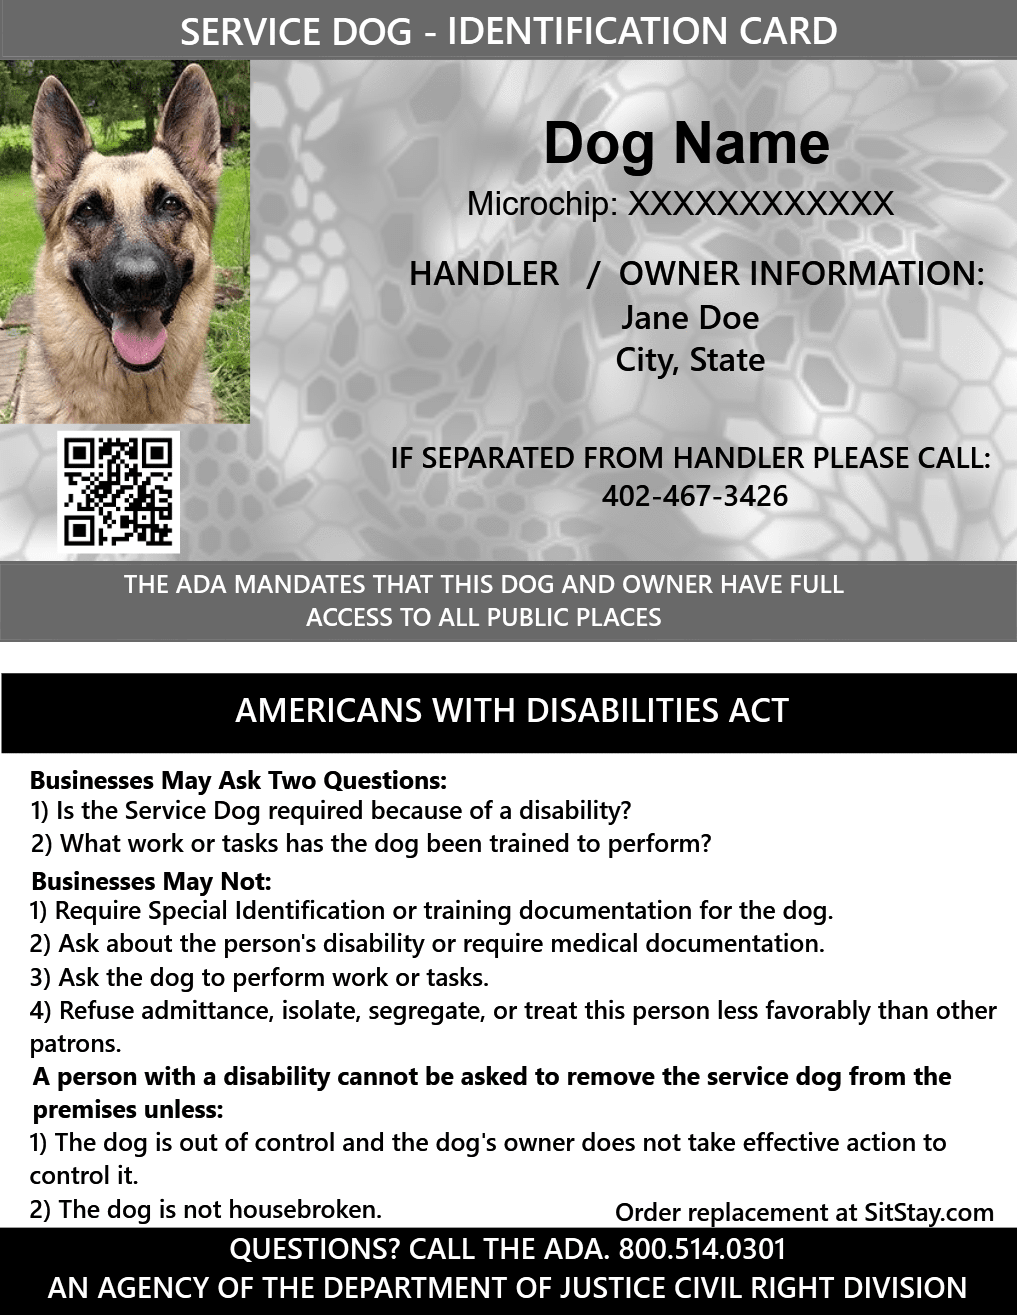 Id Card Service Dog With Holographic Security Seal Service Dogs Emotional Support Animal Medication For Dogs